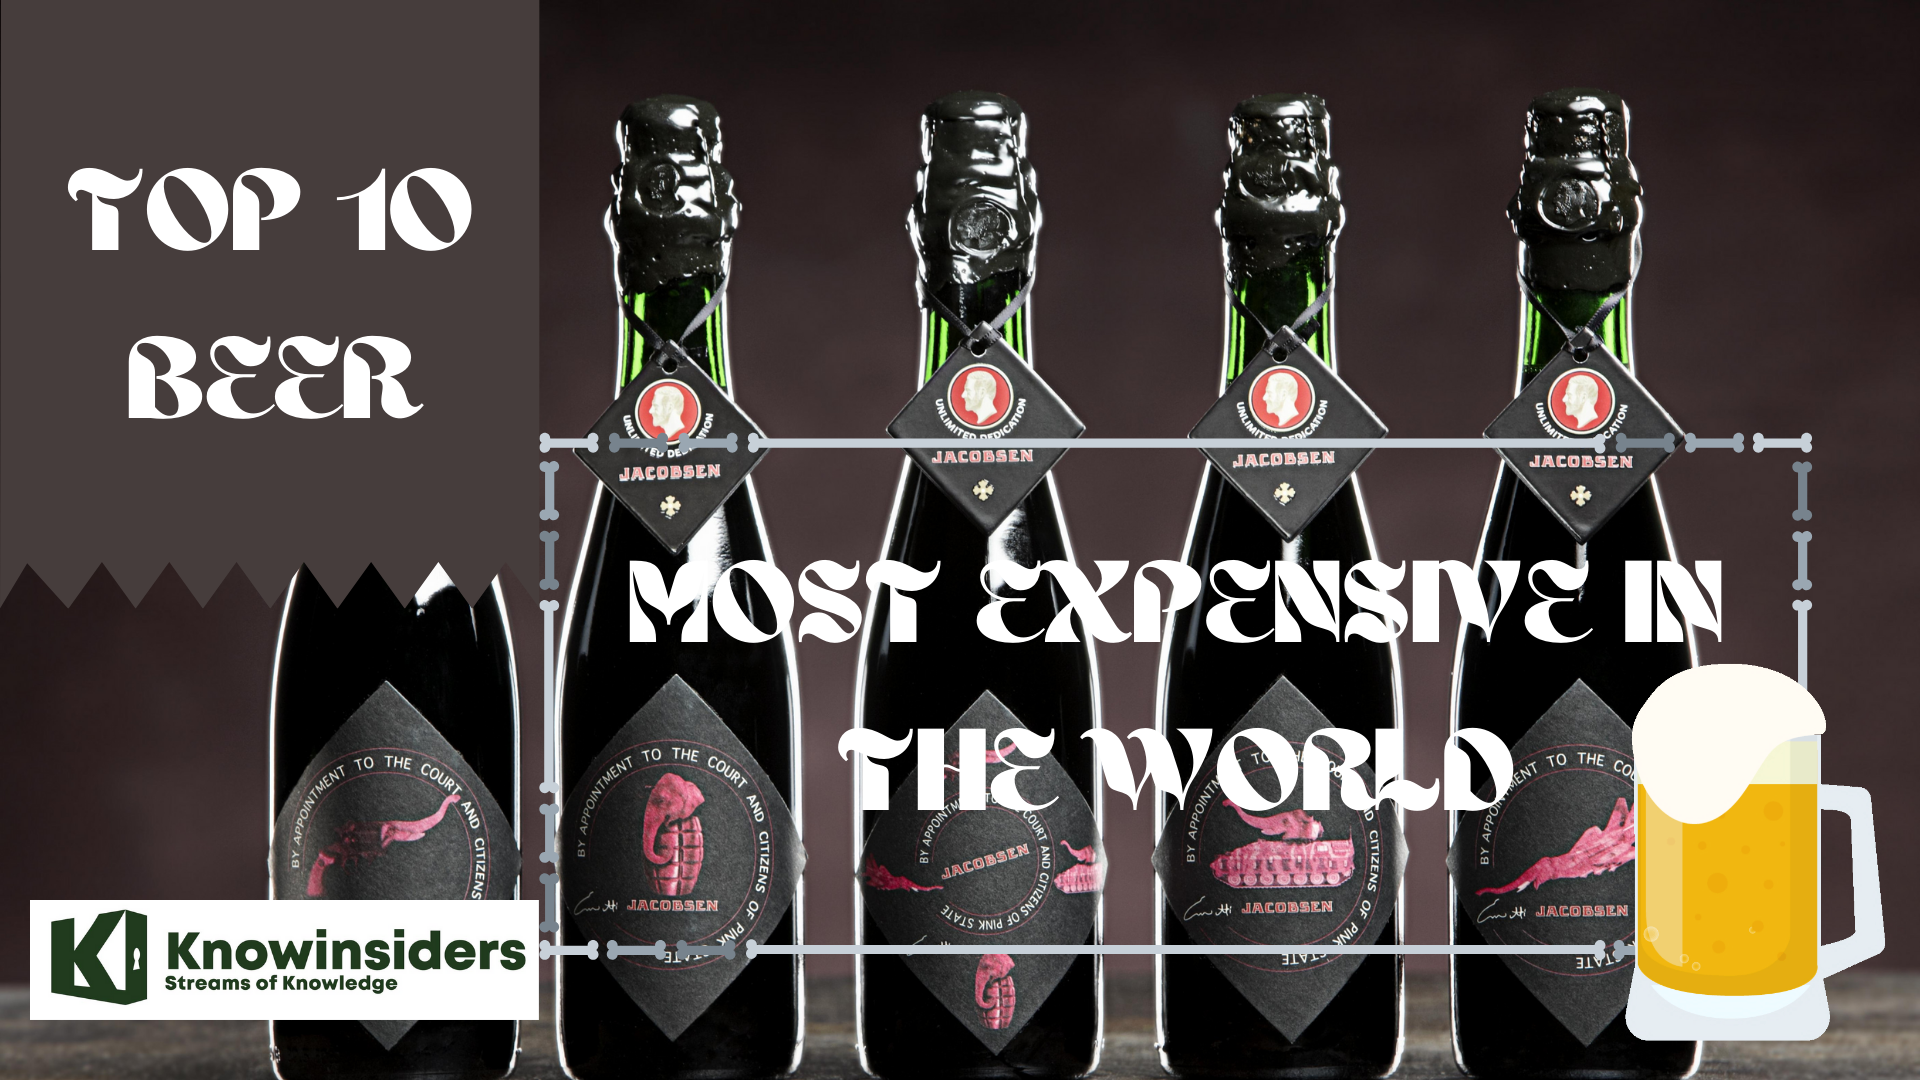 Top 10 Beers - Most Expensive In The World